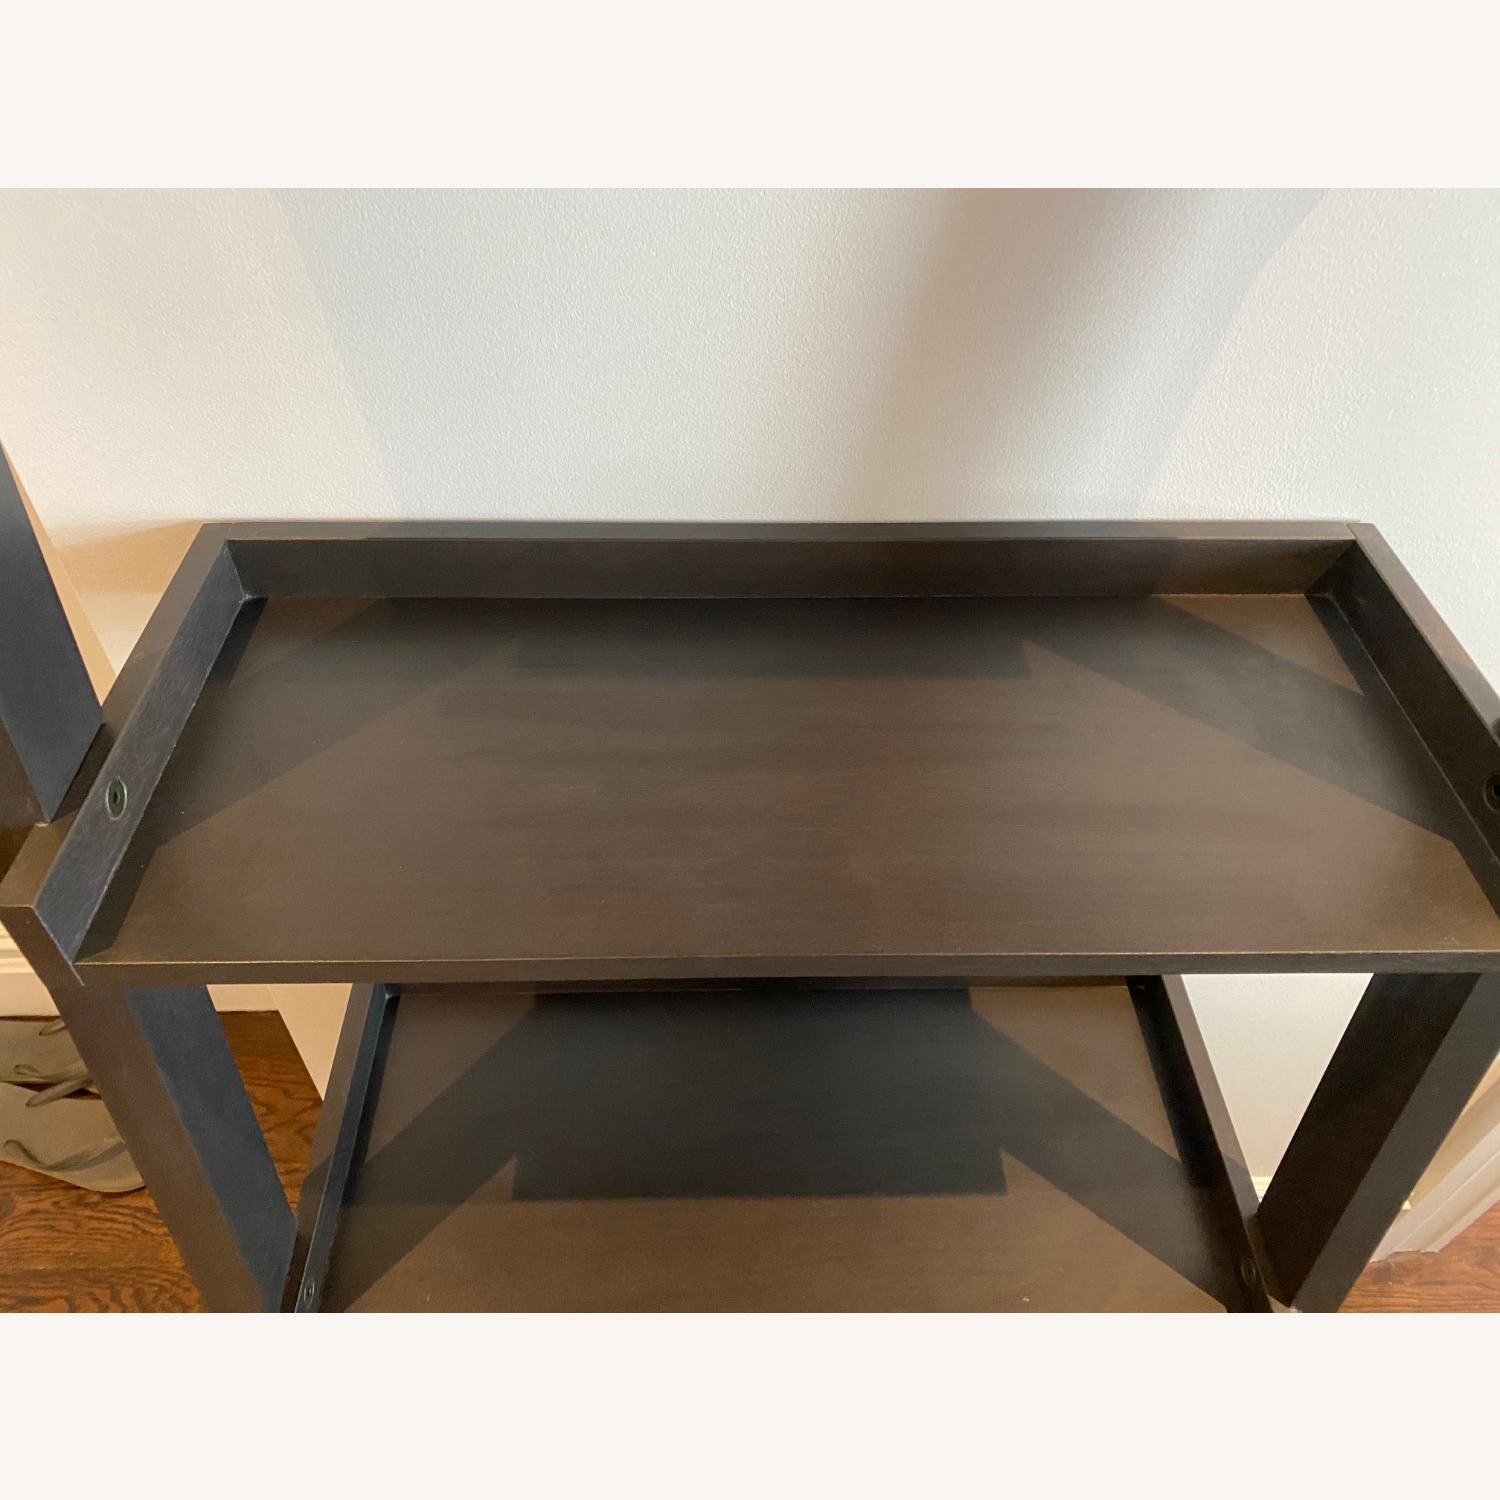 Crate and Barrel Sloane Leaning Bookcase - image-7